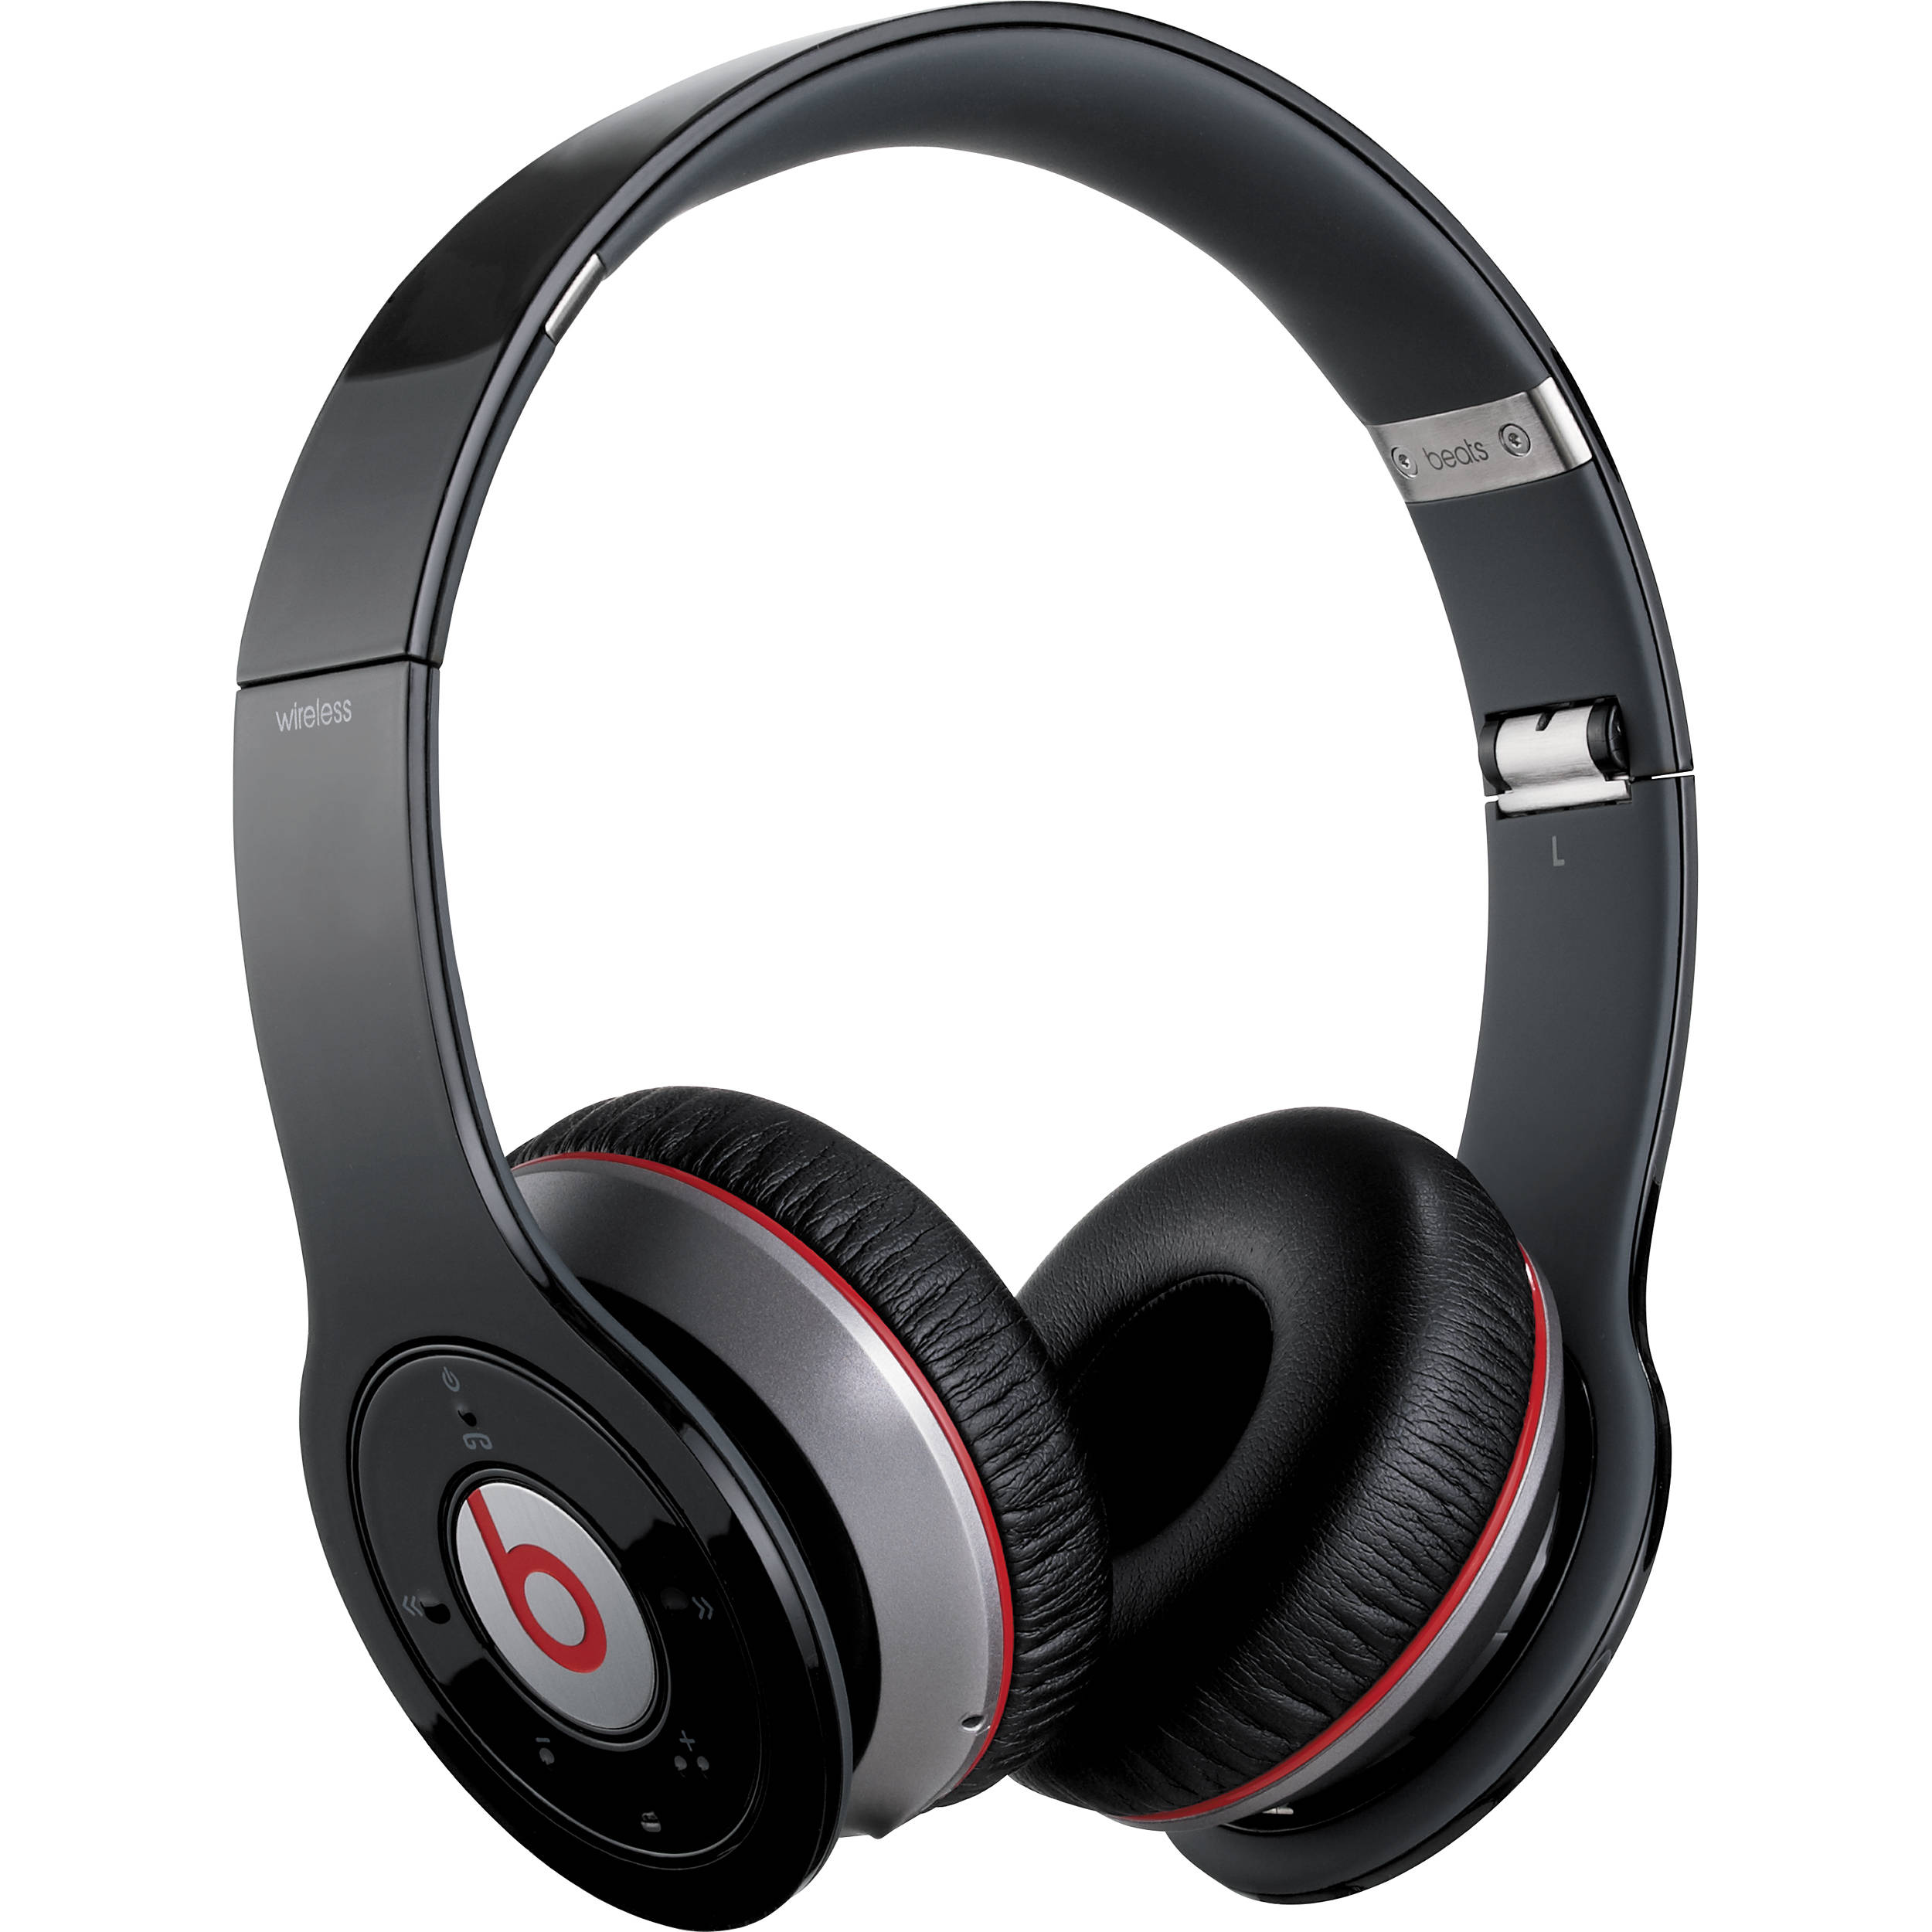 beats by dr dre wireless bluetooth on ear 900 00009 01 b h. Black Bedroom Furniture Sets. Home Design Ideas